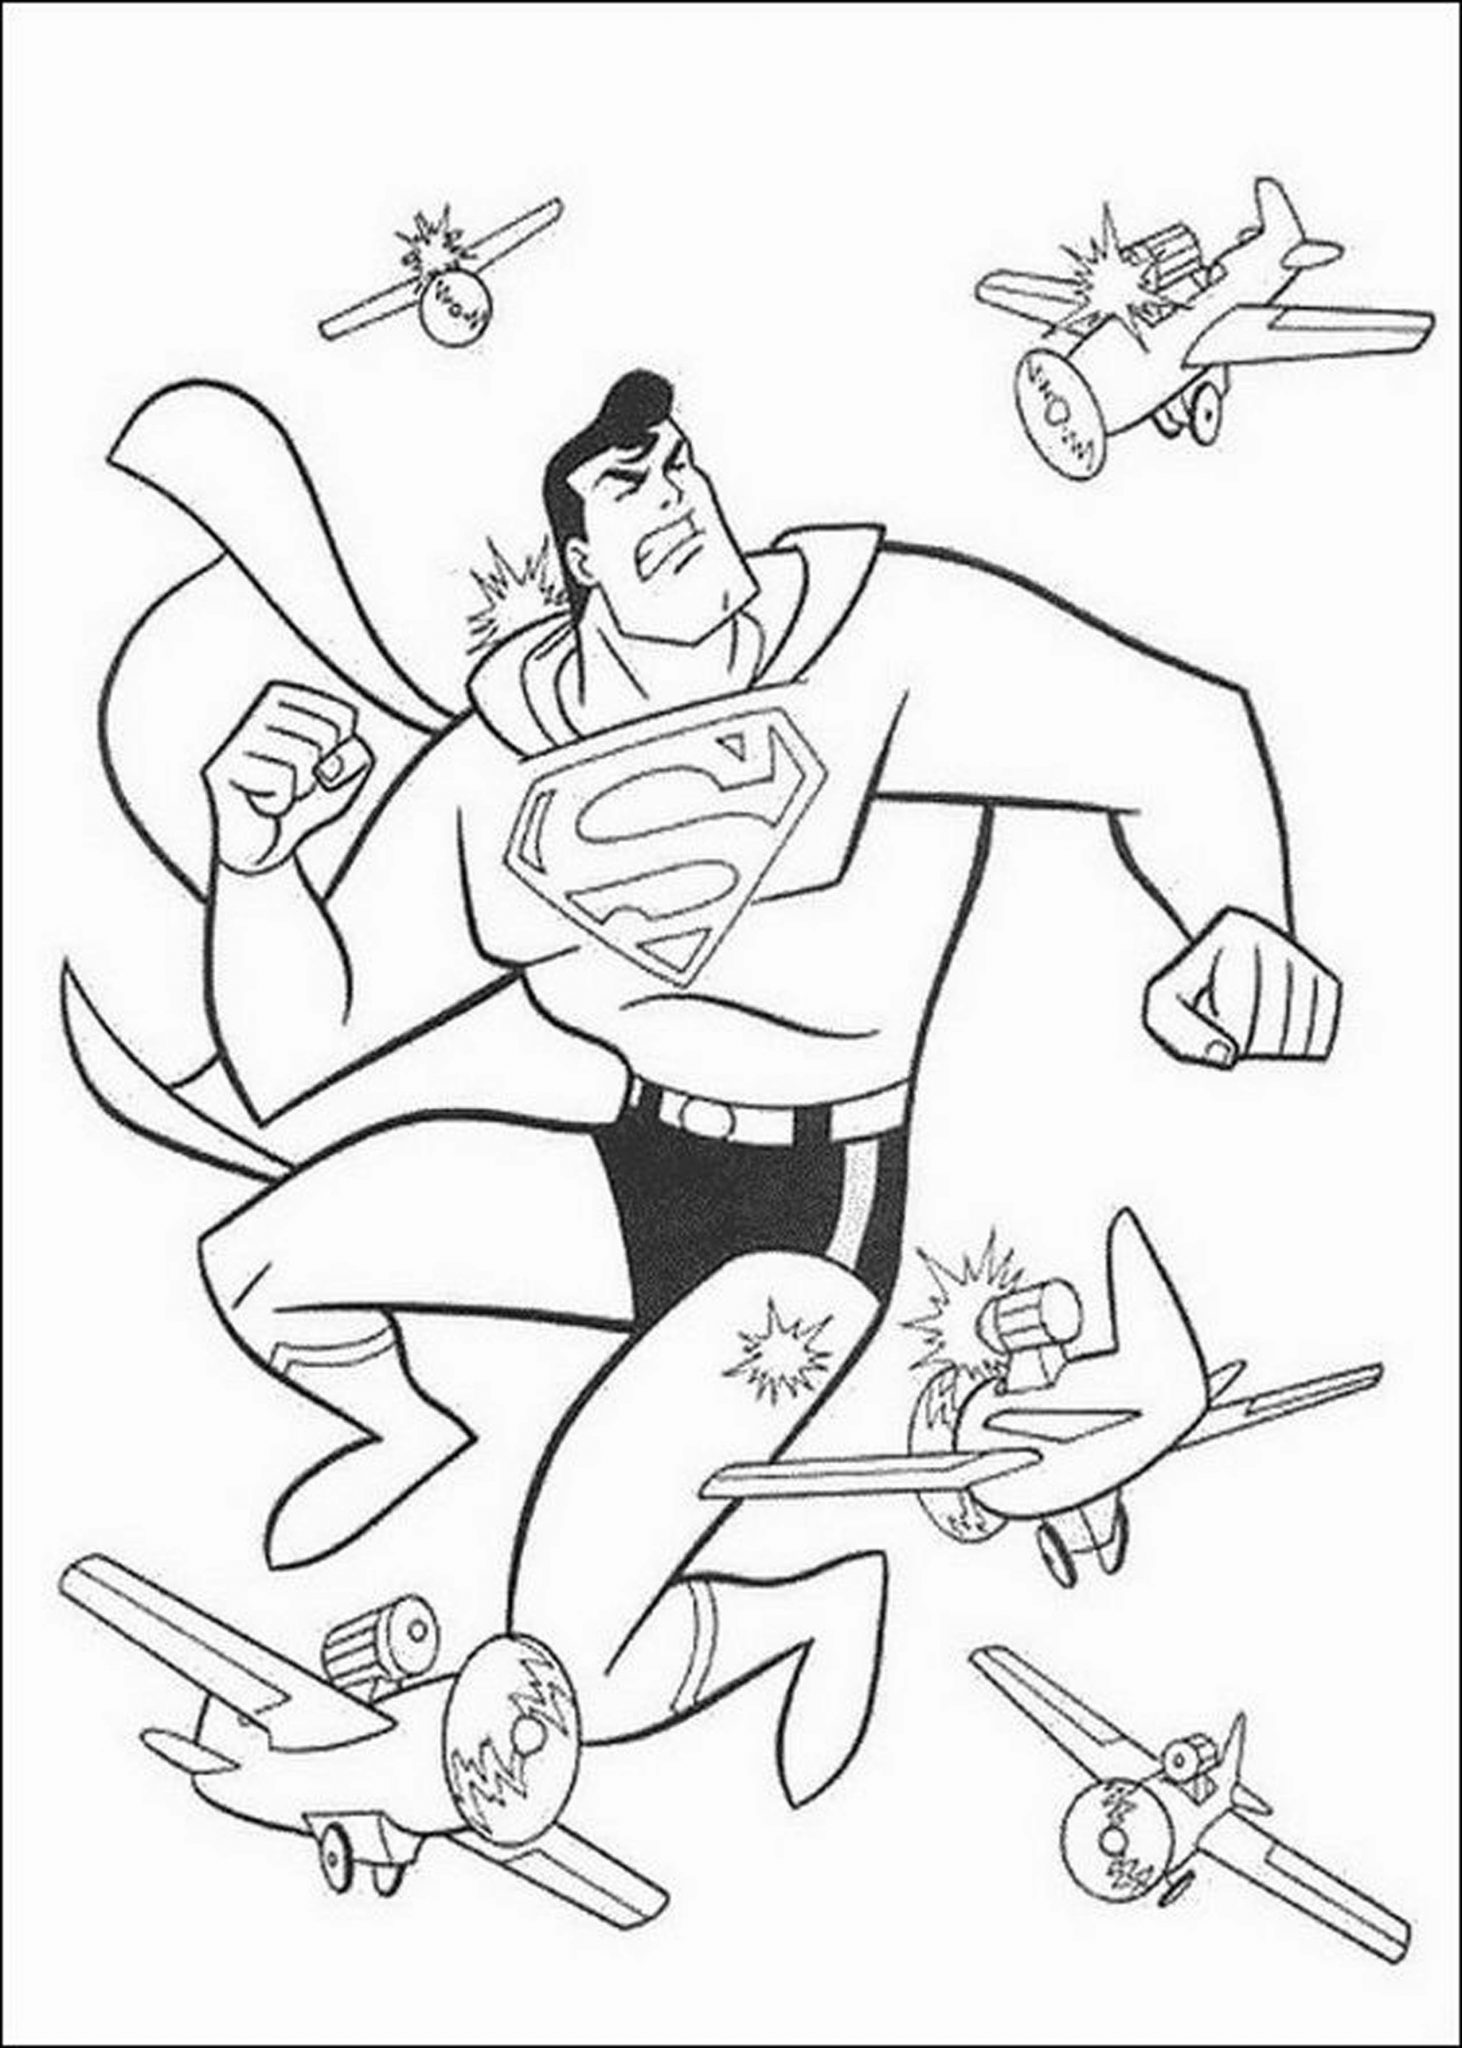 coloring sheet boy coloring pages for boys training shopping for children coloring sheet boy